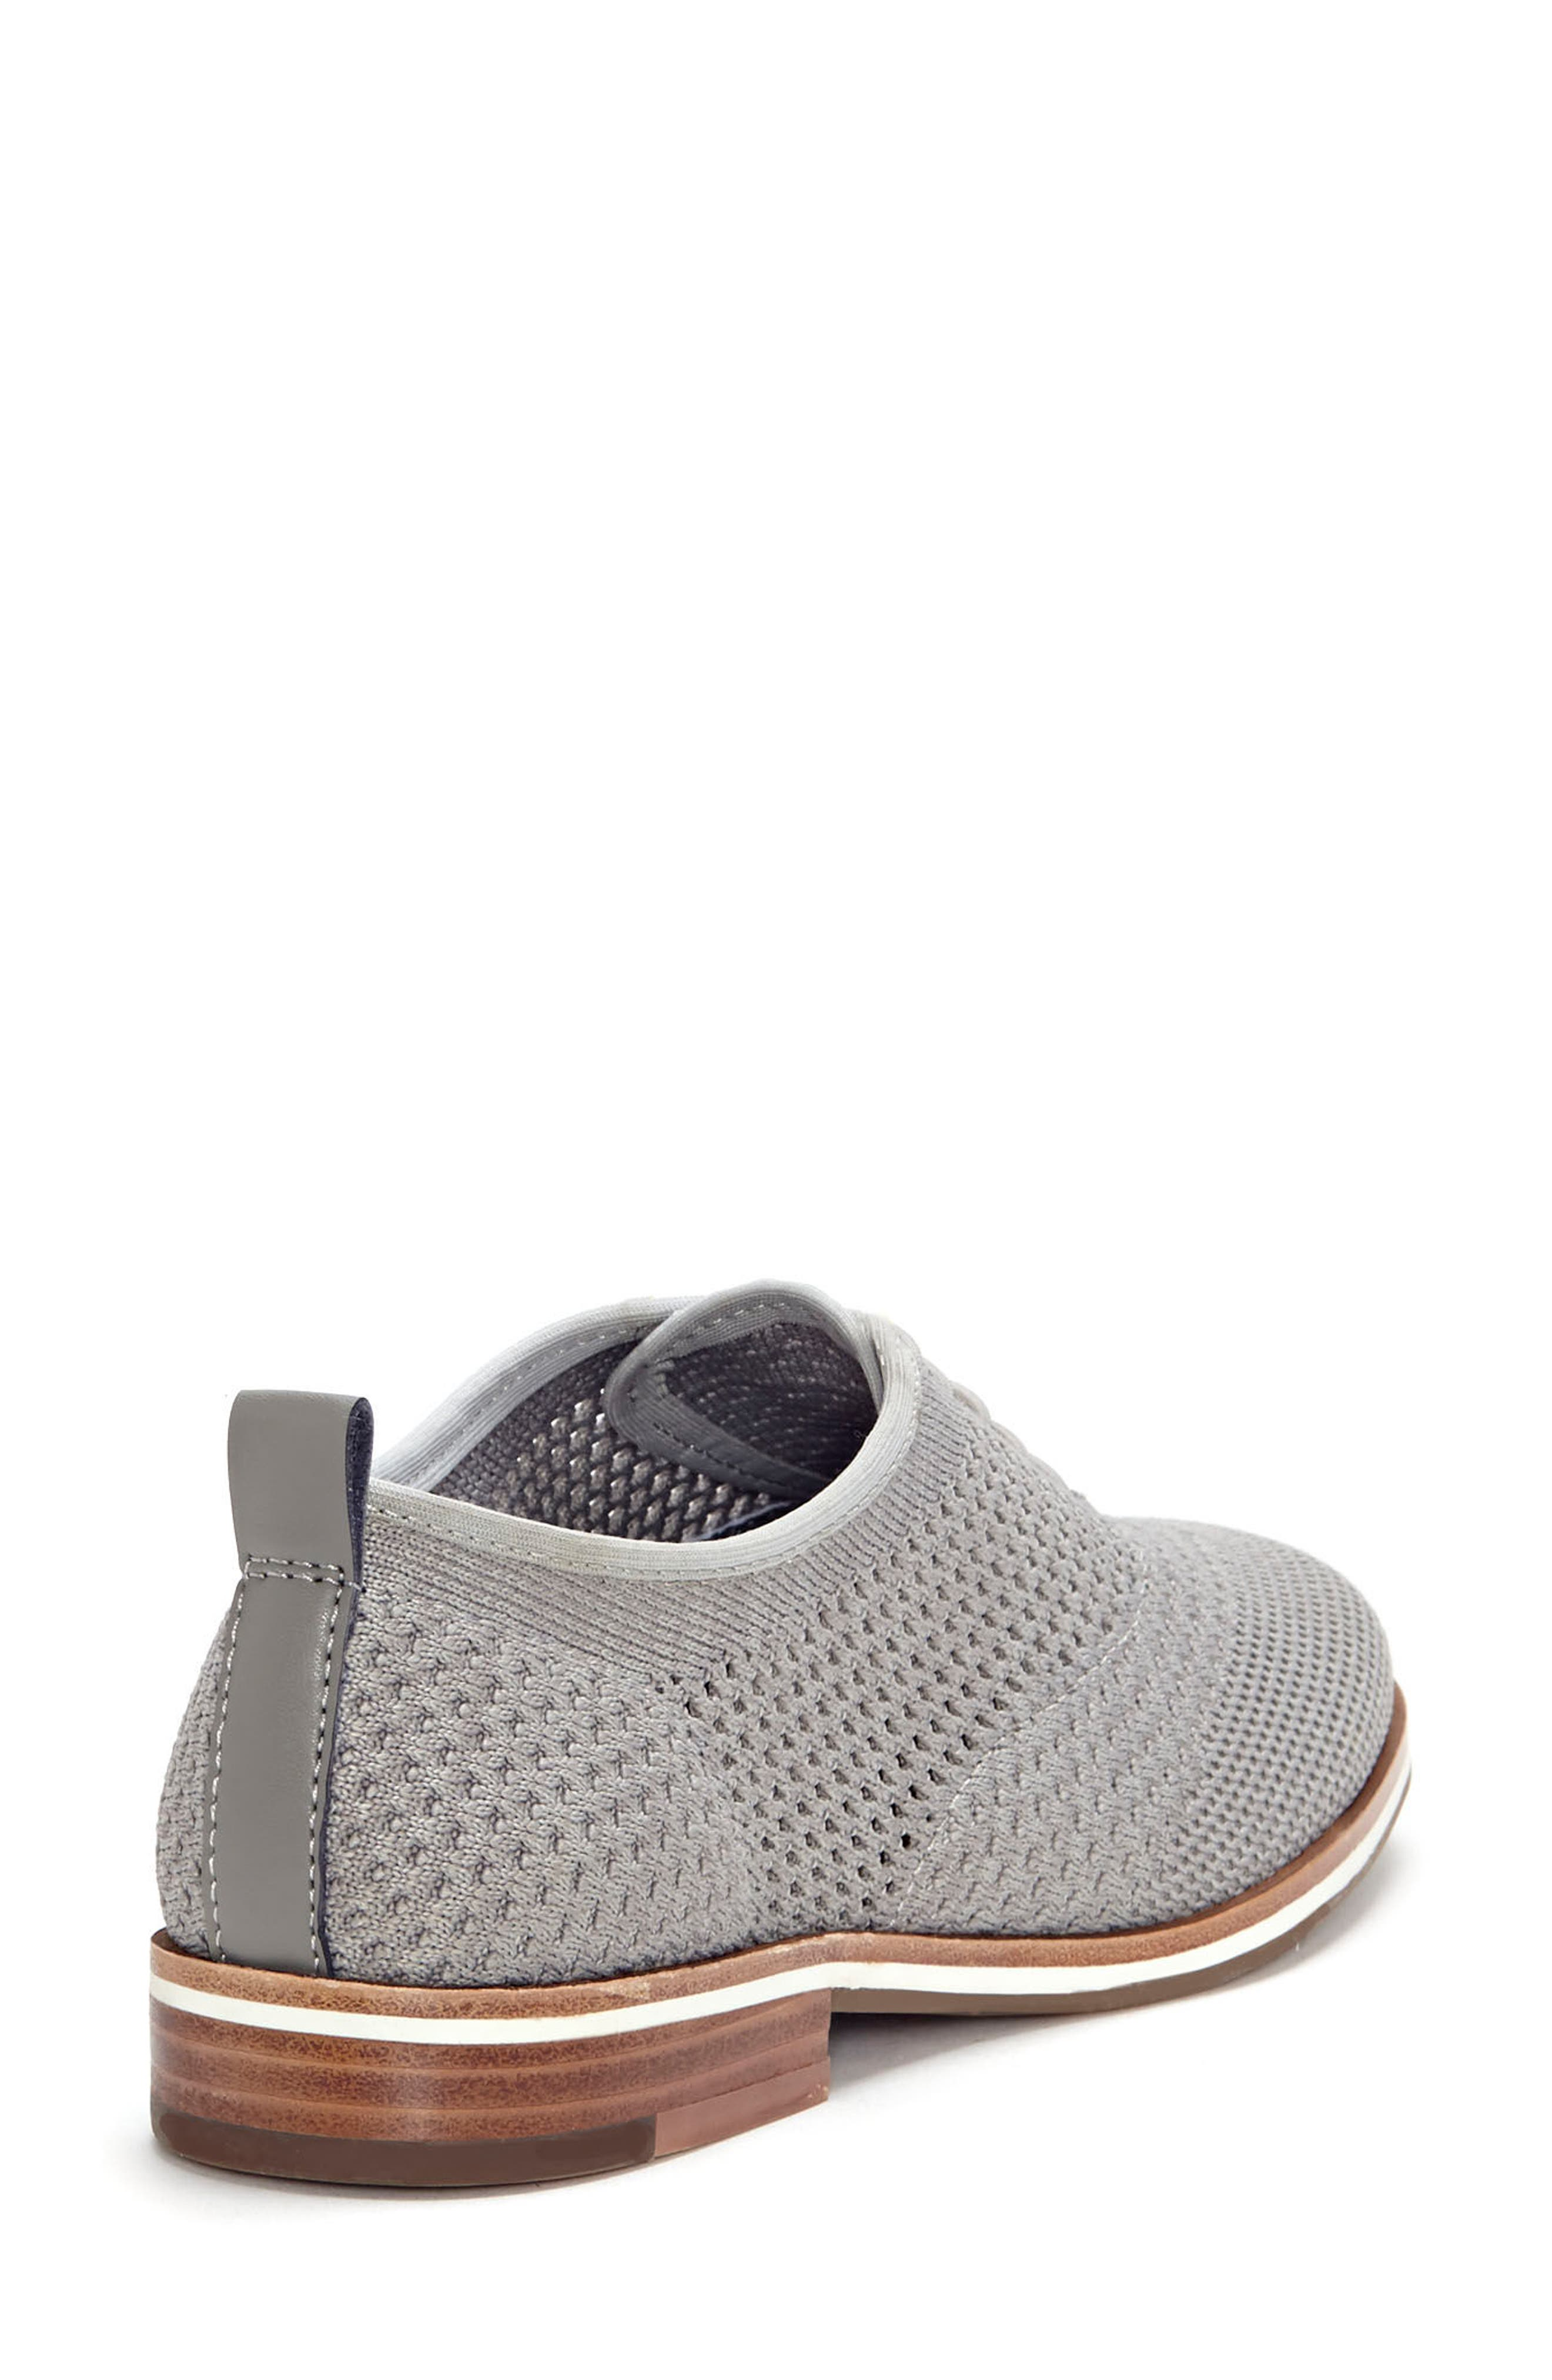 Lucerne Knit Oxford,                             Alternate thumbnail 7, color,                             HEATHER GREY TEXTILE FABRIC